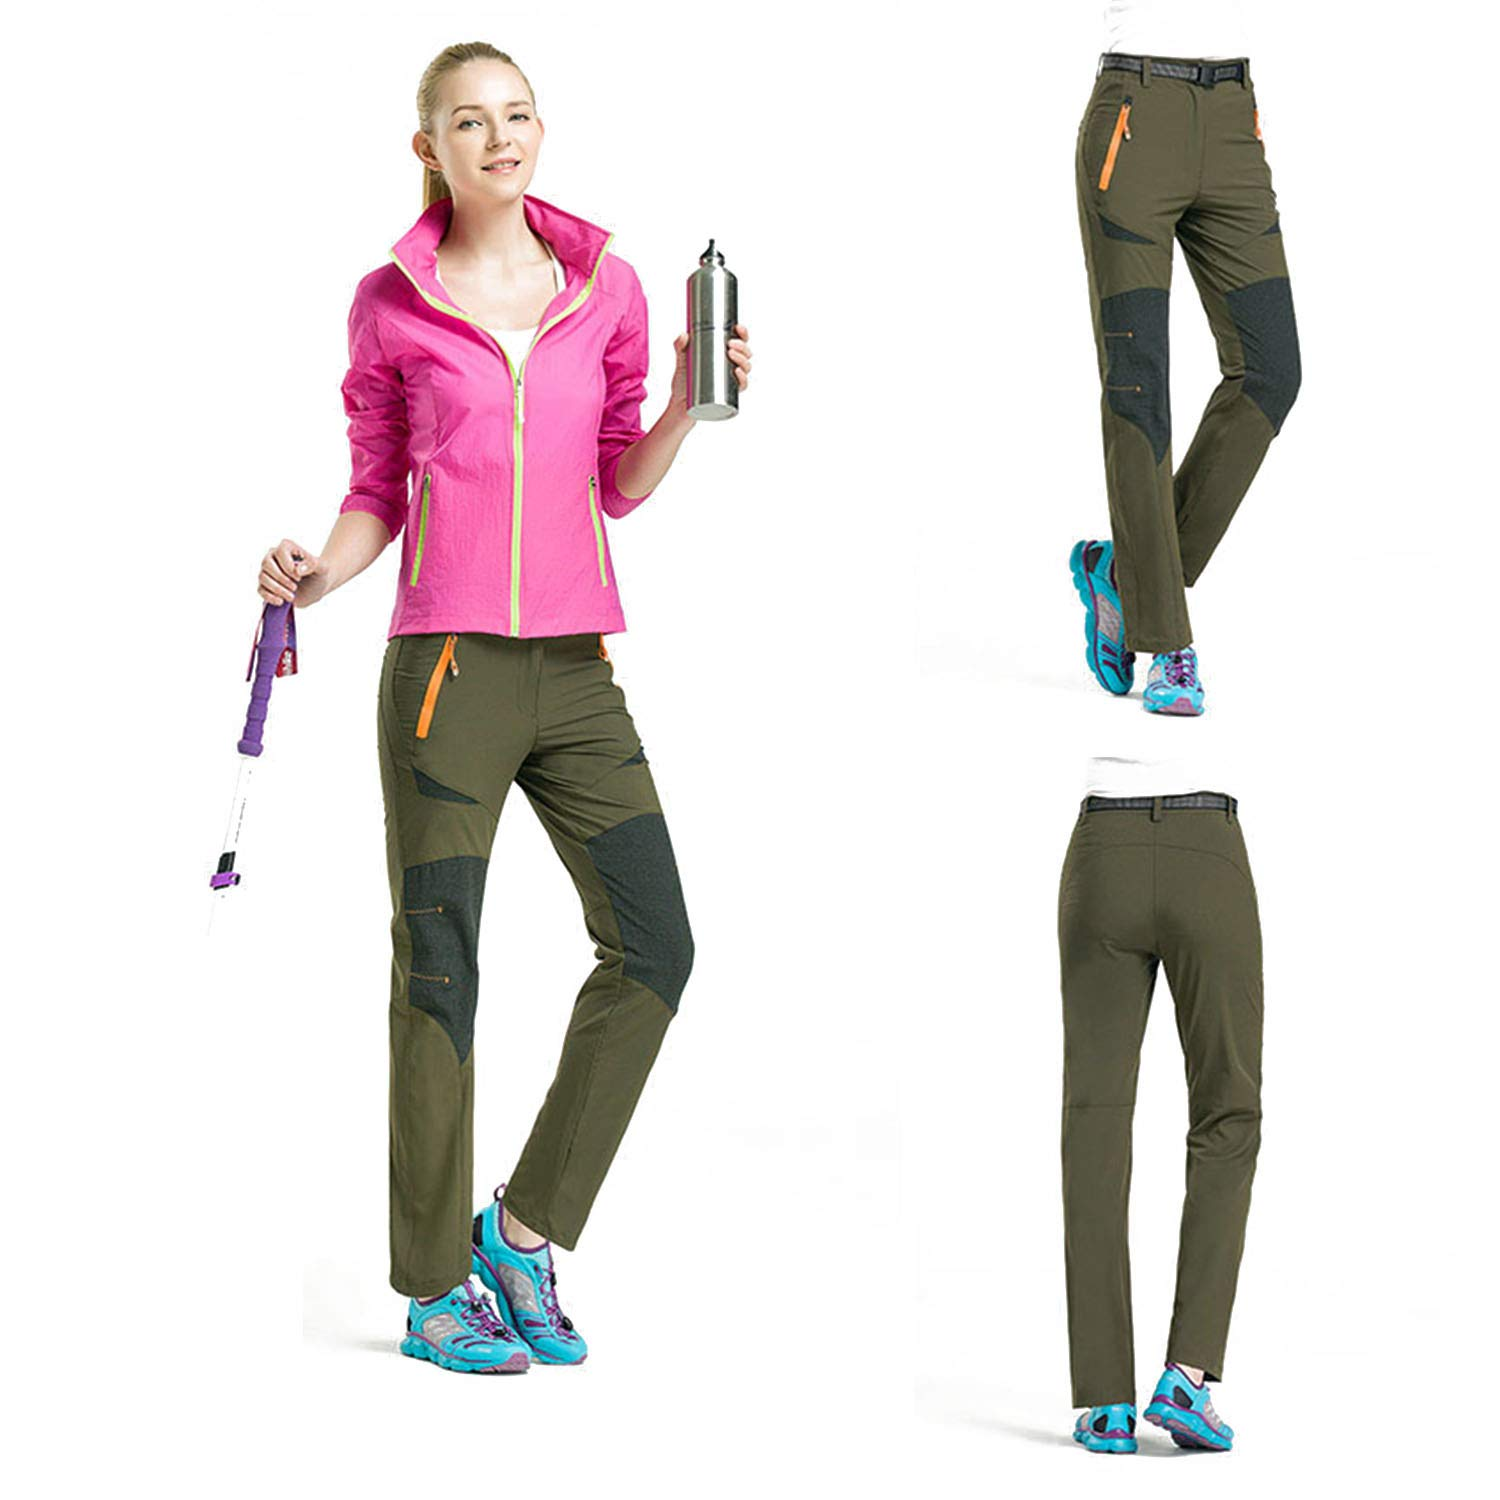 LHHMZ Femmes Pantalon de randonn/ée Imperm/éable Coupe-Vent Respirant Sports de Plein air Escalade Fonctionnement Jogging Pantalon d/équitation